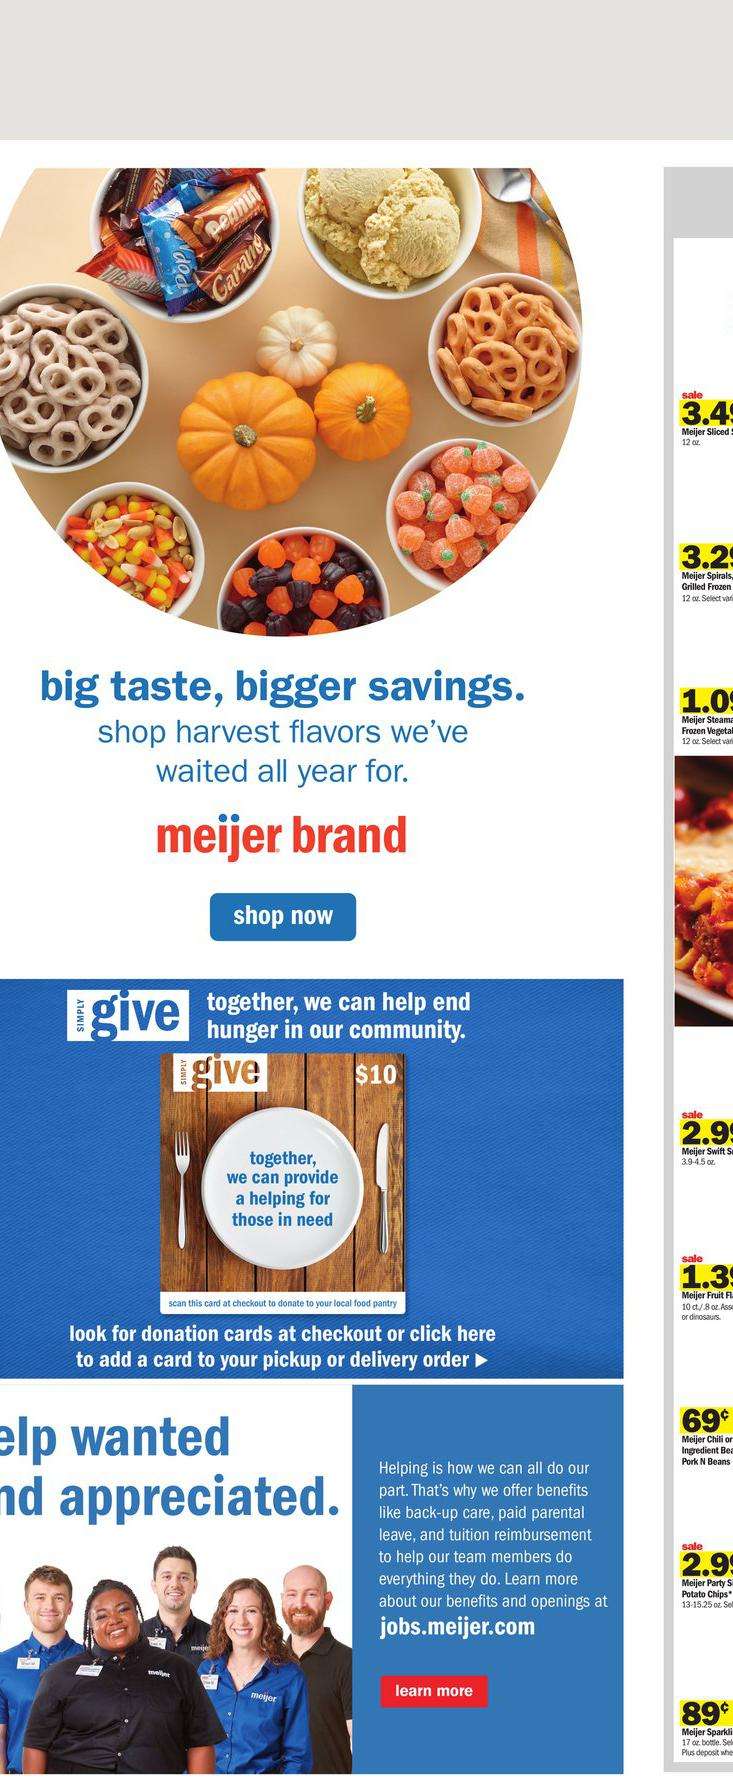 10.10.2021 Meijer ad 8. page